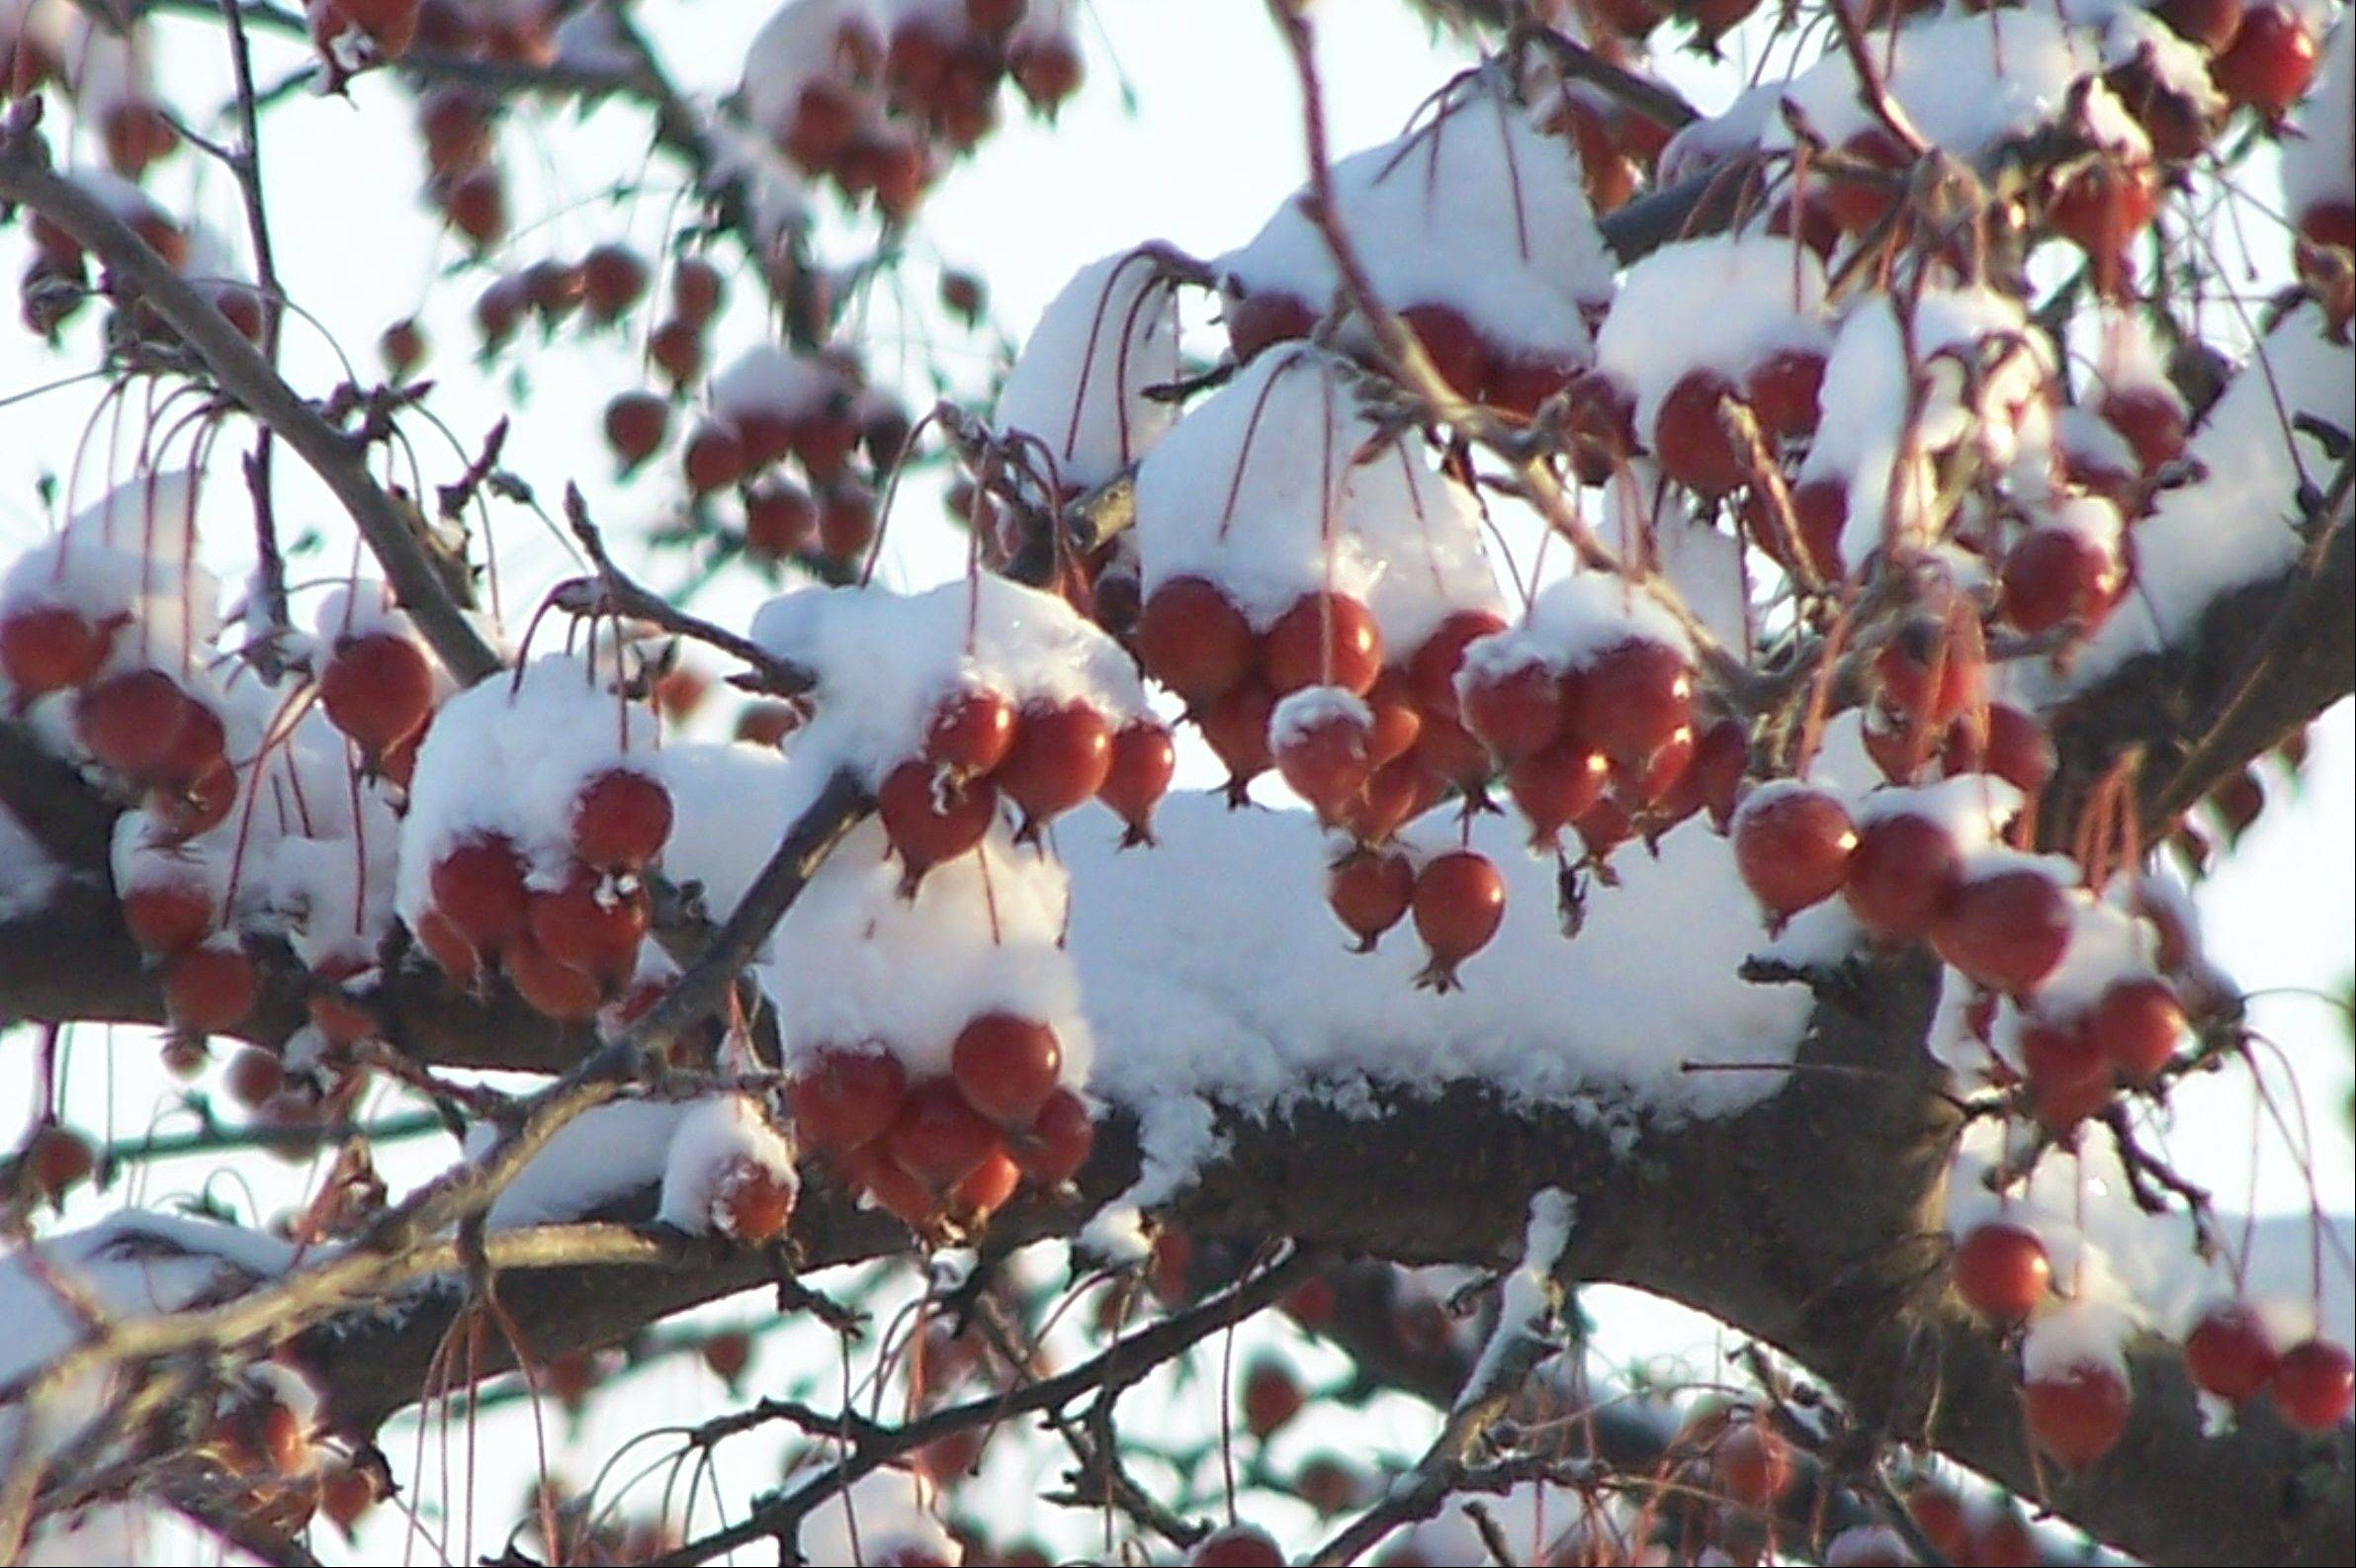 Crabapples add color to the winter landscape even when covered with snow.